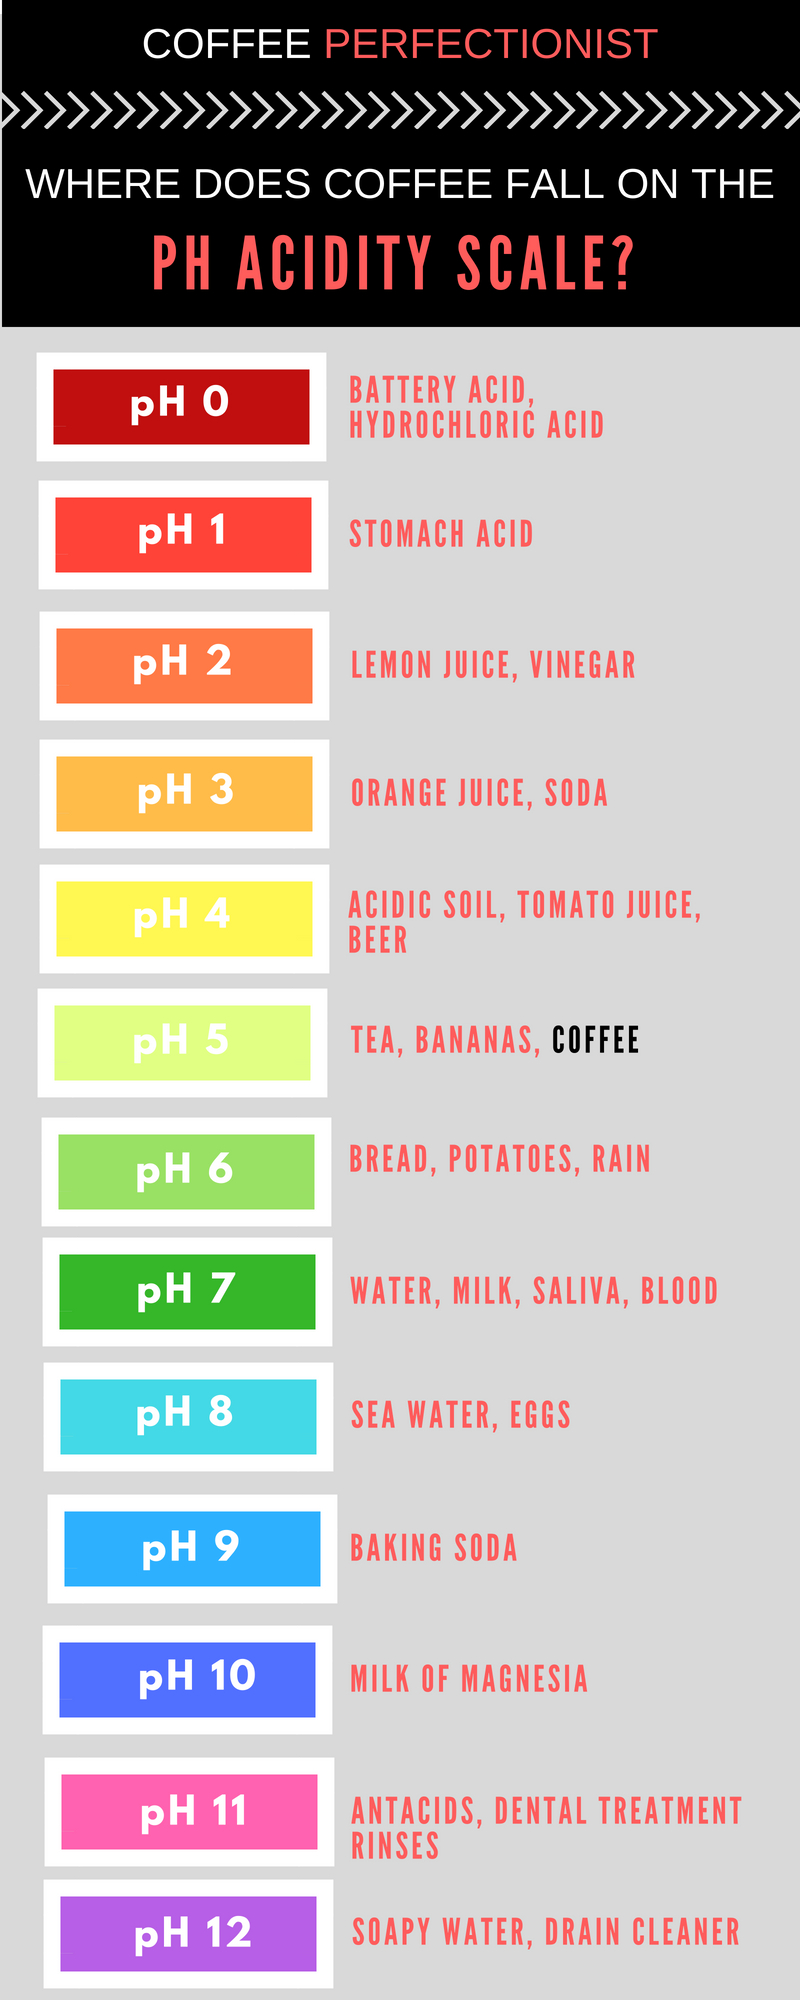 Is coffee acidic? Where does coffee sit on the ph scale?